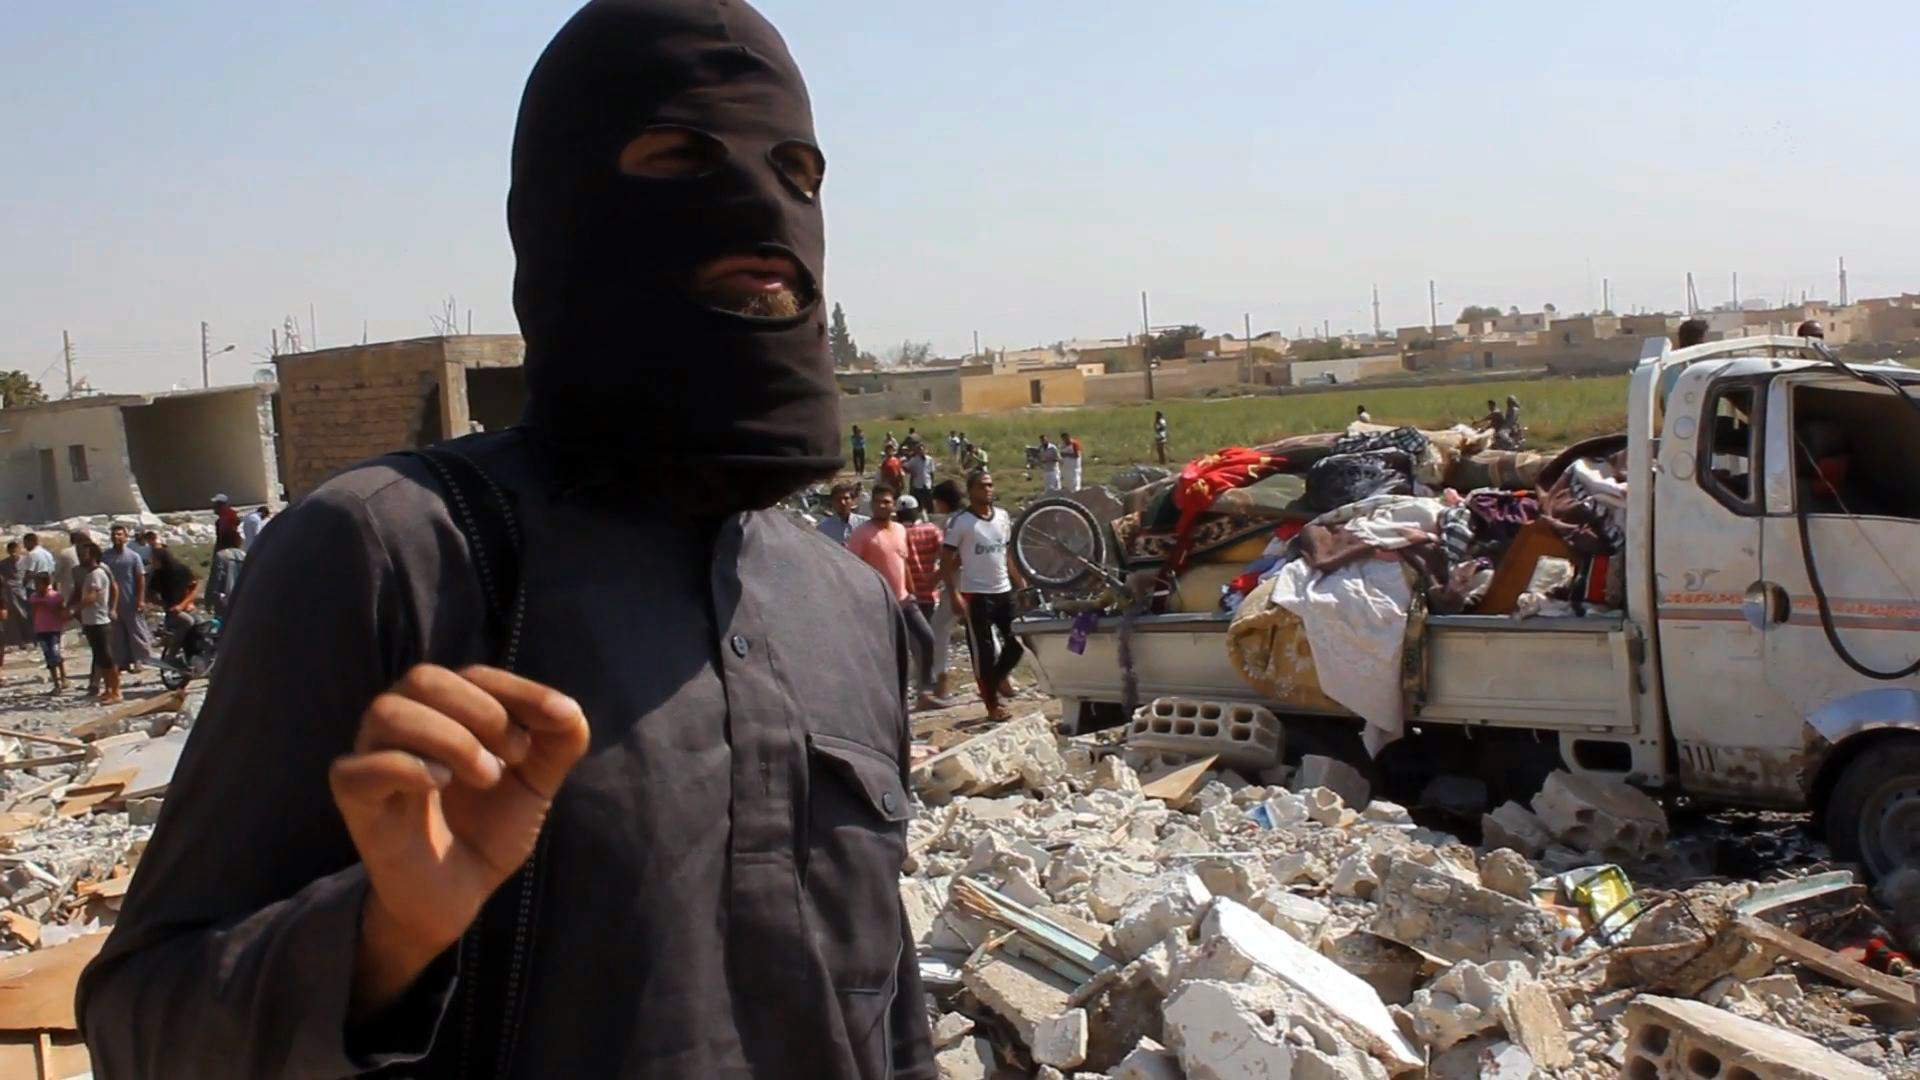 Refusing to speak to terrorists is not only a lazy approach, but could lead to more deaths